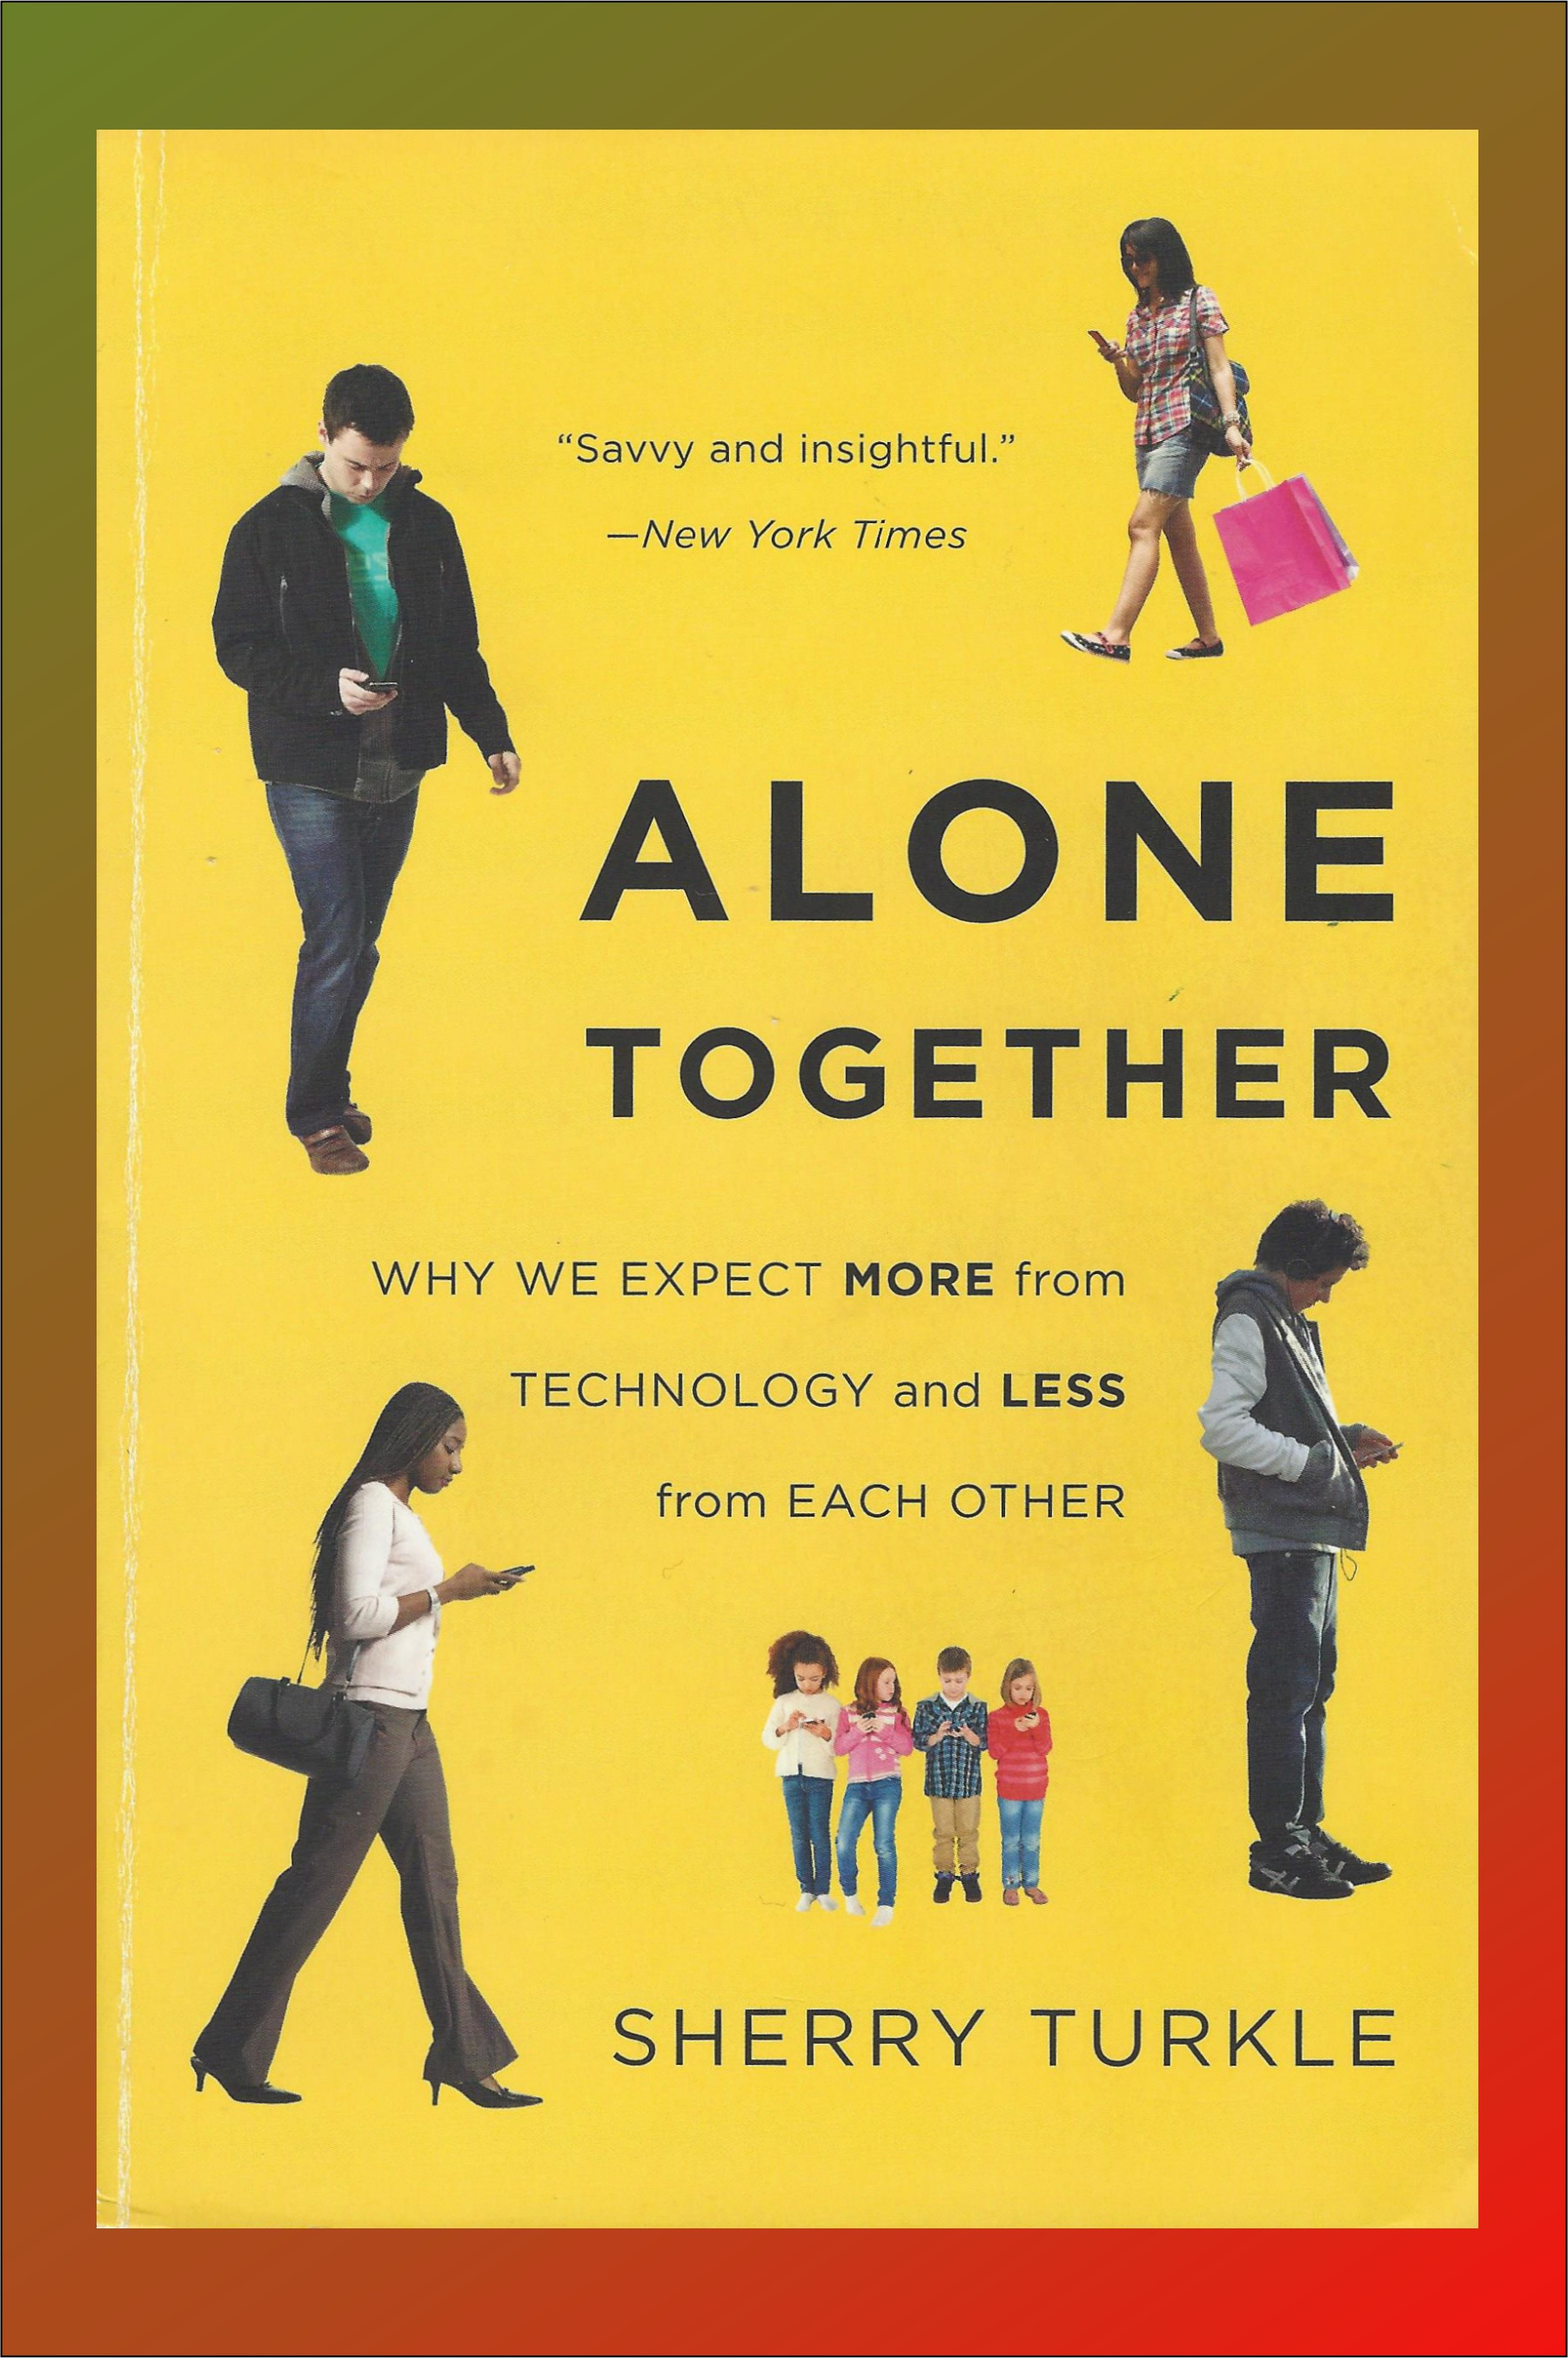 Alone_together_review_02042016